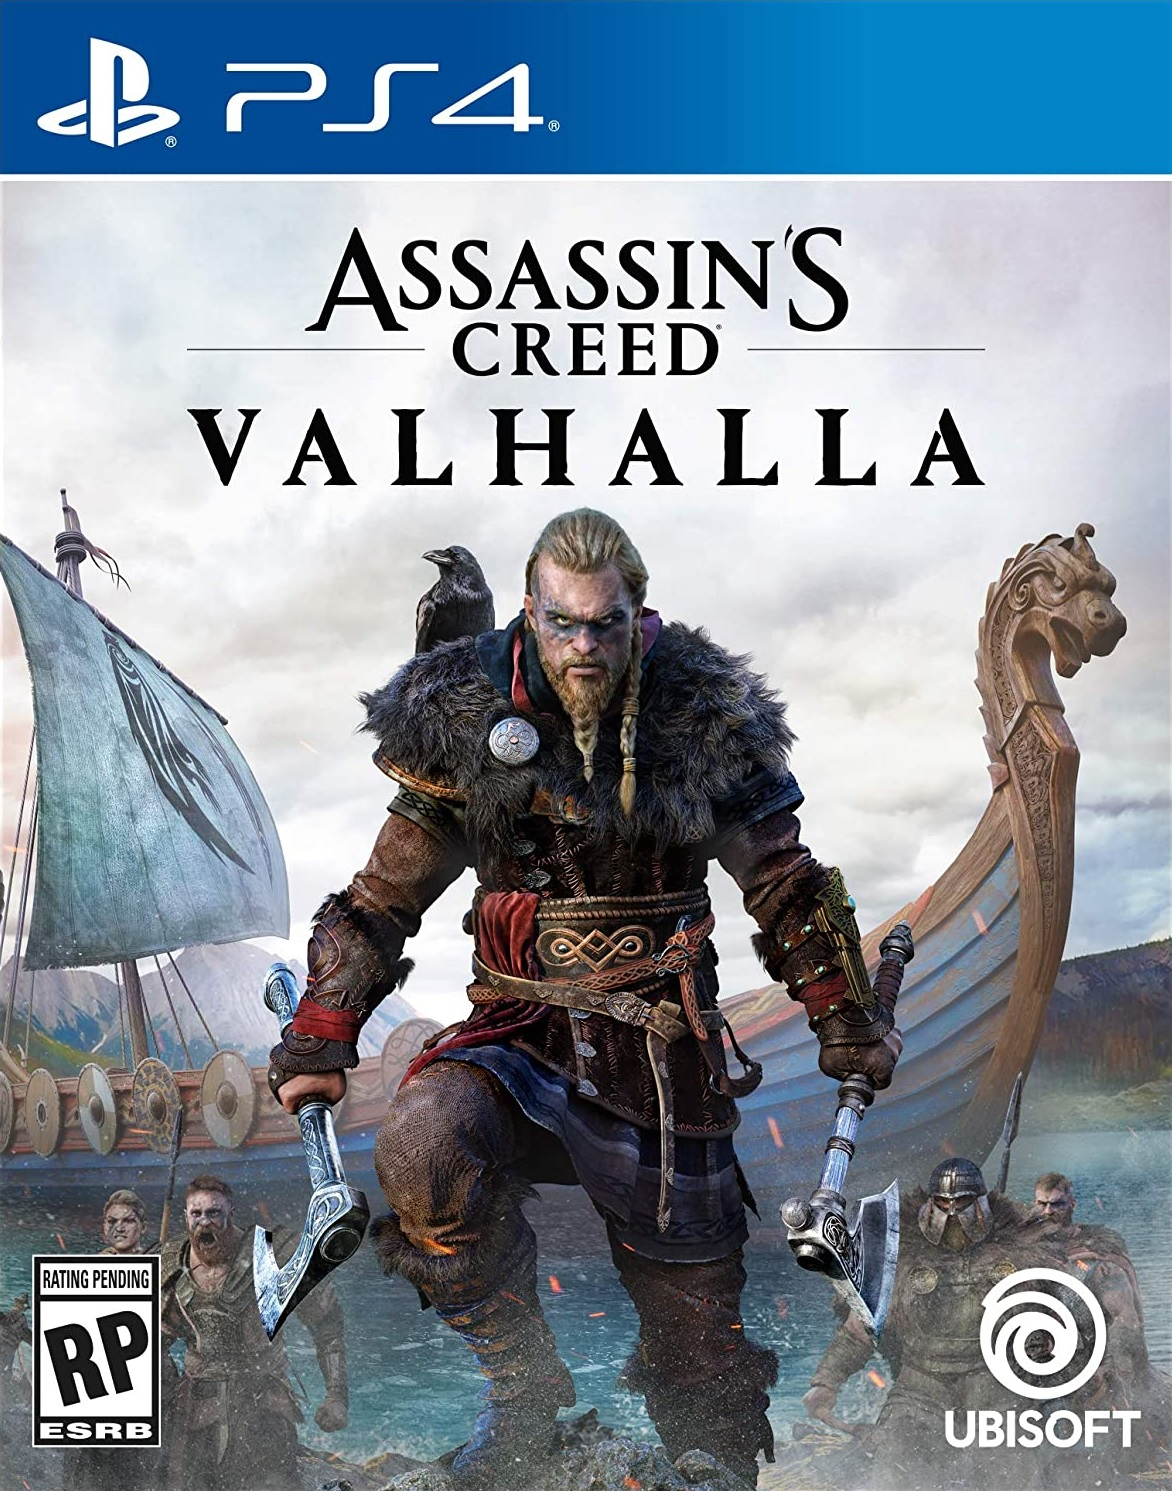 Assassin's Creed Valhalla - Reveal - US - PS4